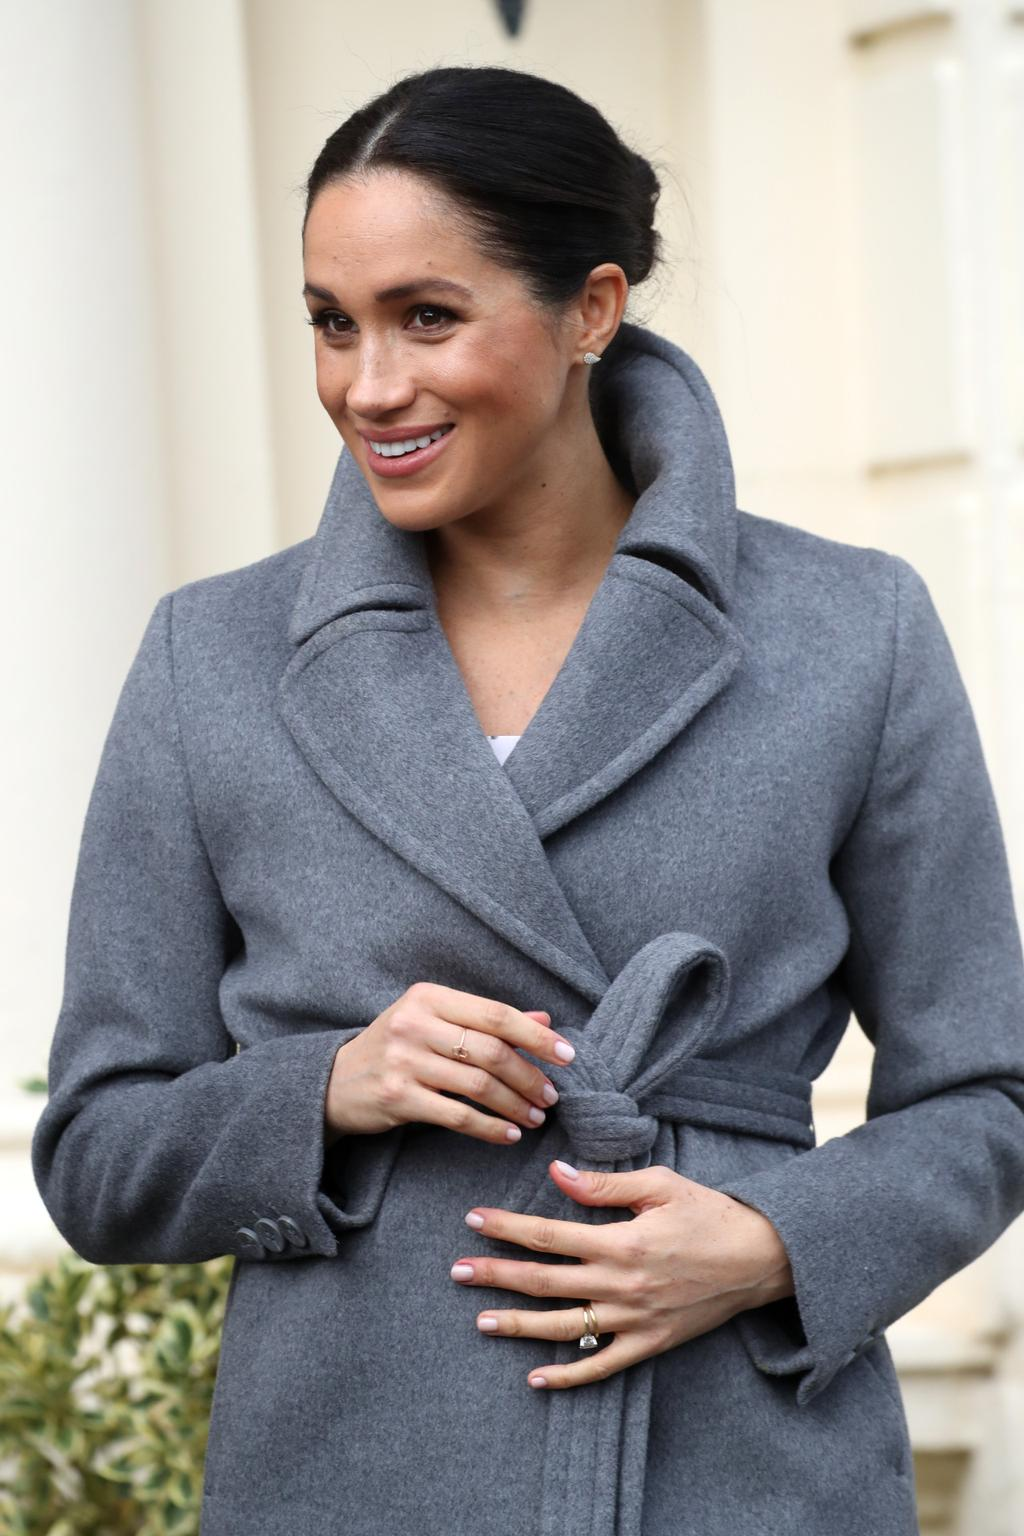 Hillary Clinton Encourages Meghan Markle To Stay Strong In The Face Of Criticism